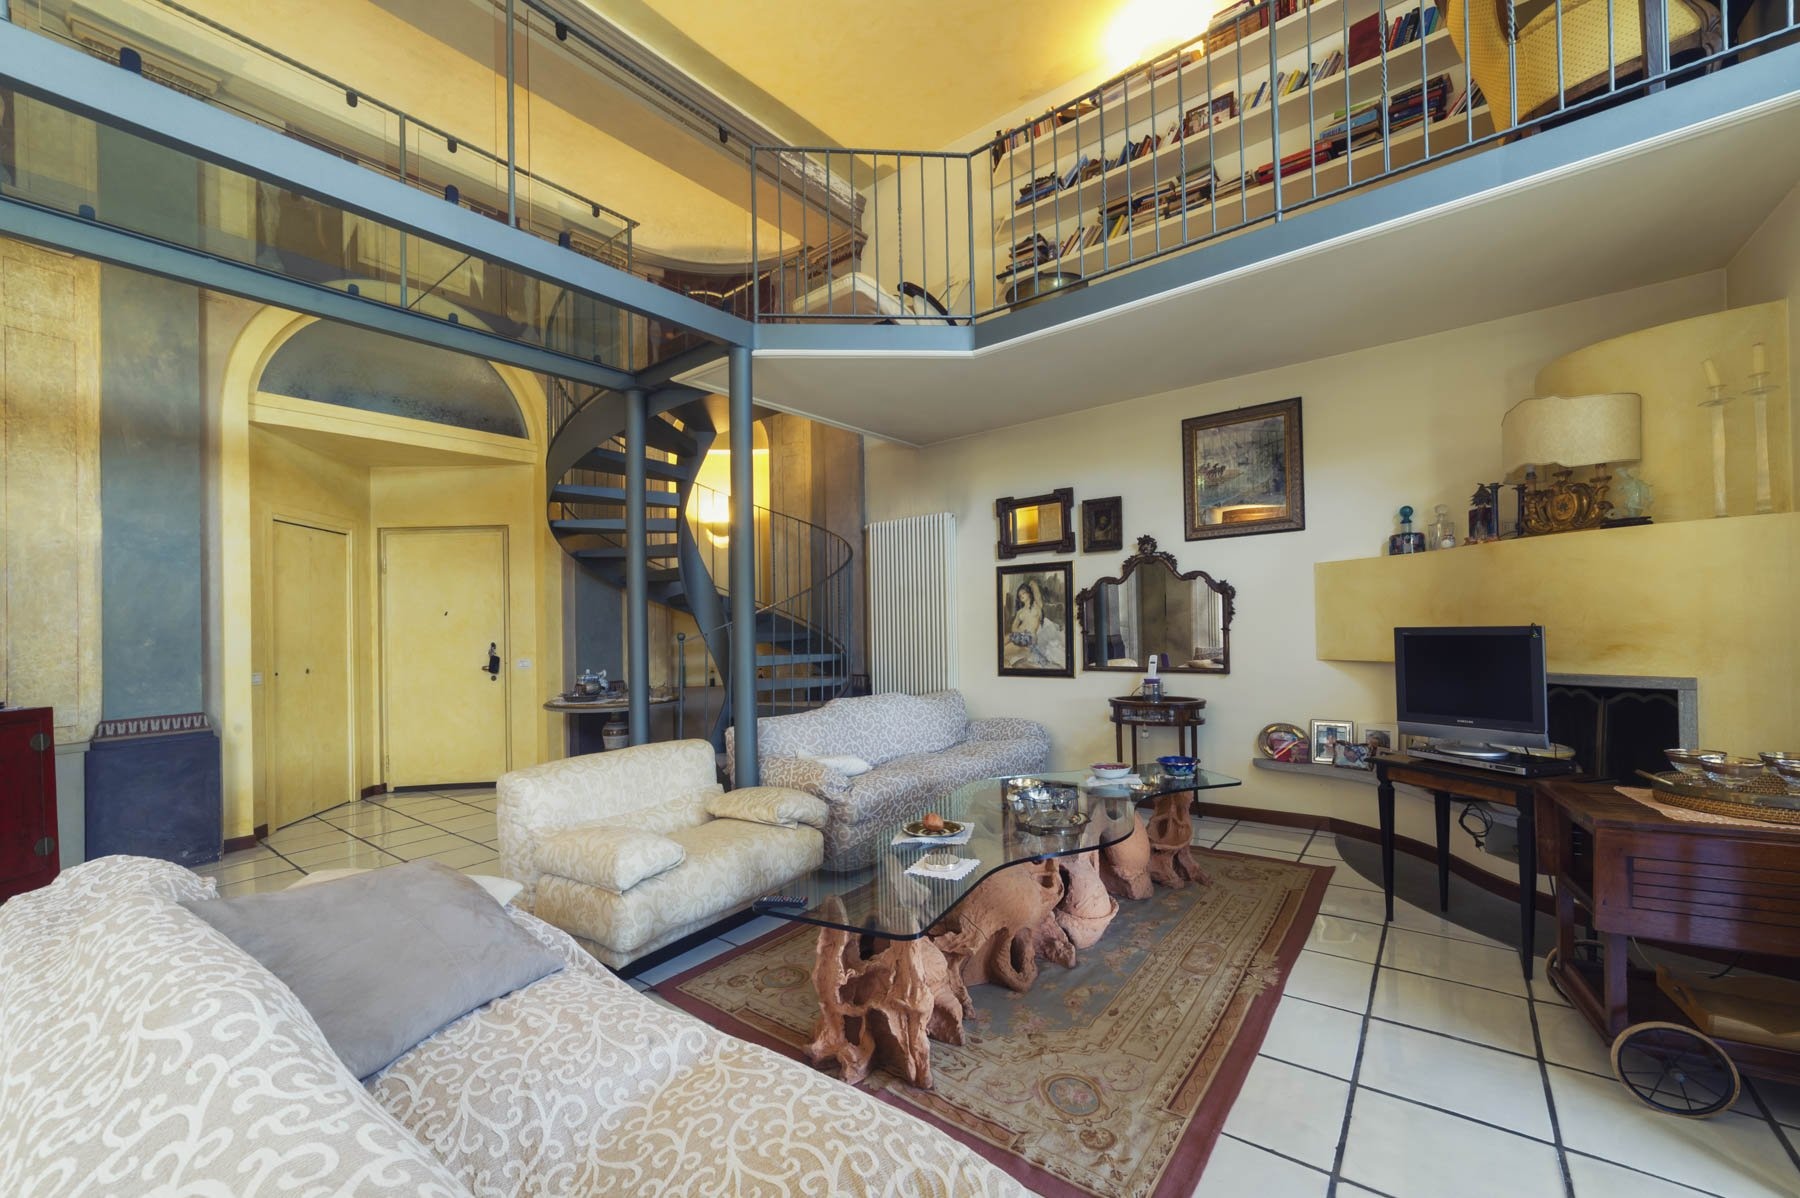 Prestigious apartment for sale in Castelletto Ticino - living room